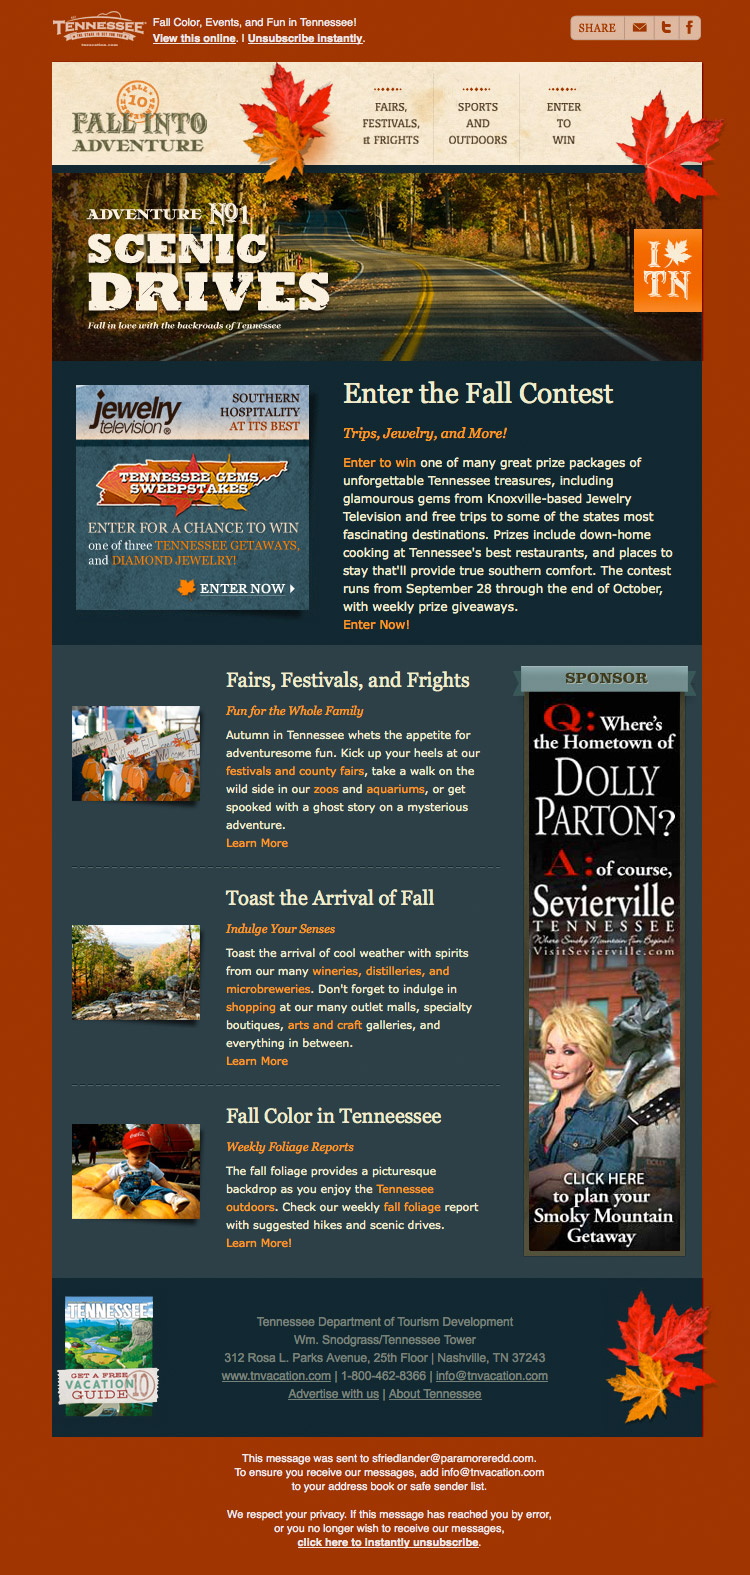 Fall Into Adventure Tennessee promo email